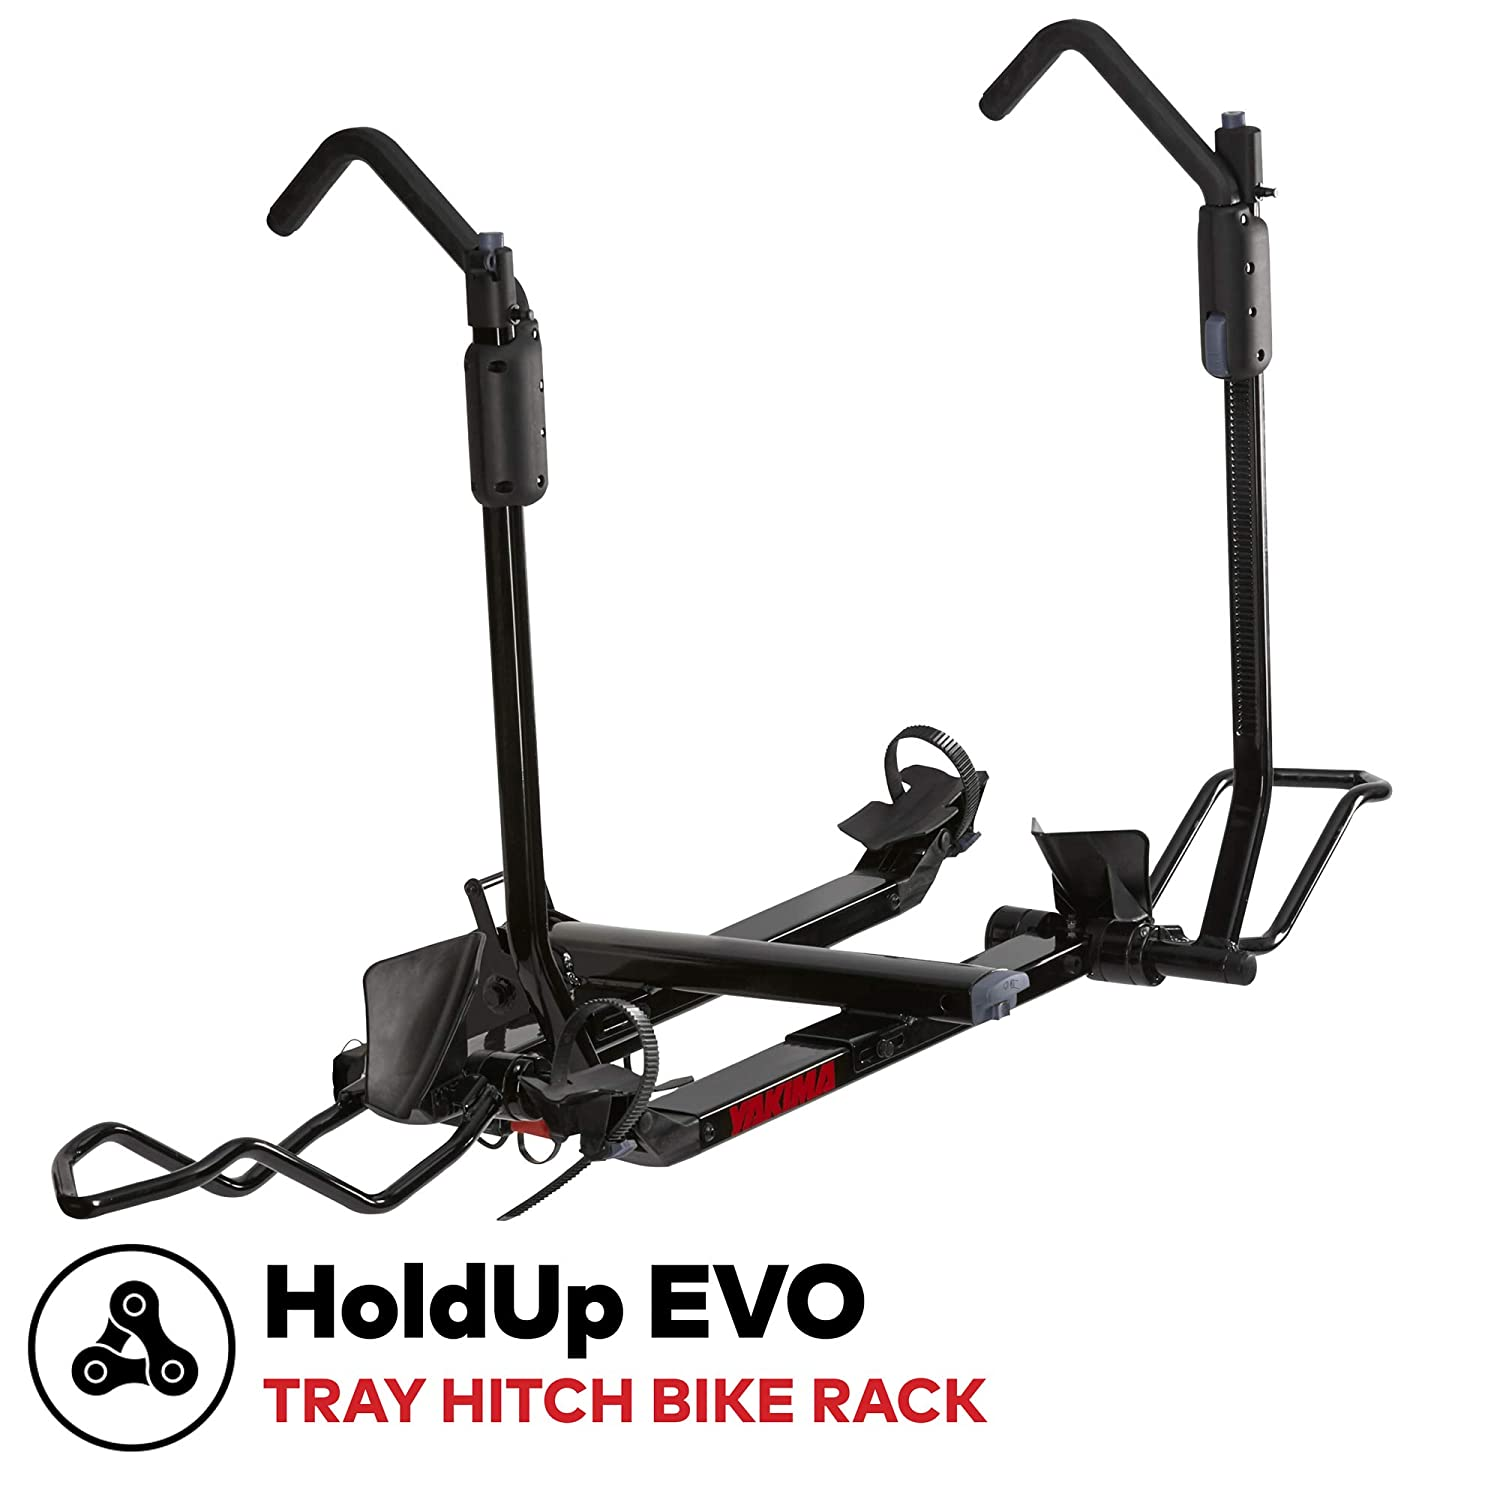 yakima – HoldUp EVO 2 Hitch Mounted Tray Bike Rack, 2 Bike Capacity